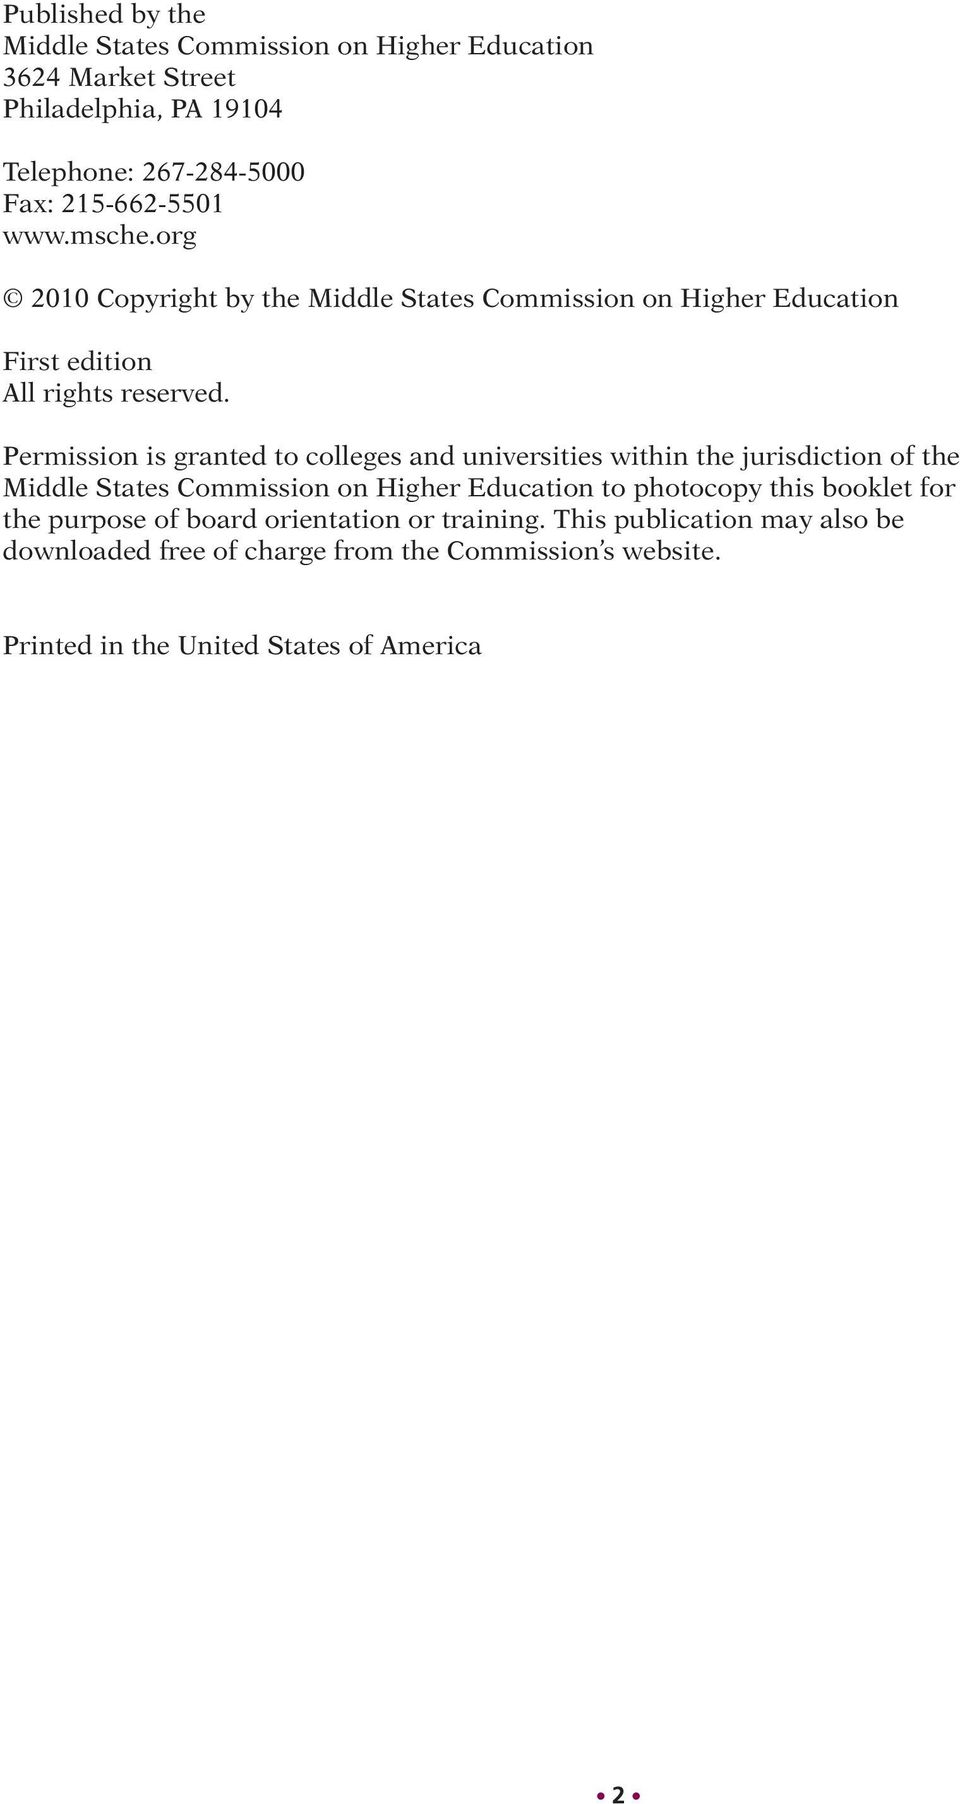 Permission is granted to colleges and universities within the jurisdiction of the Middle States Commission on Higher Education to photocopy this